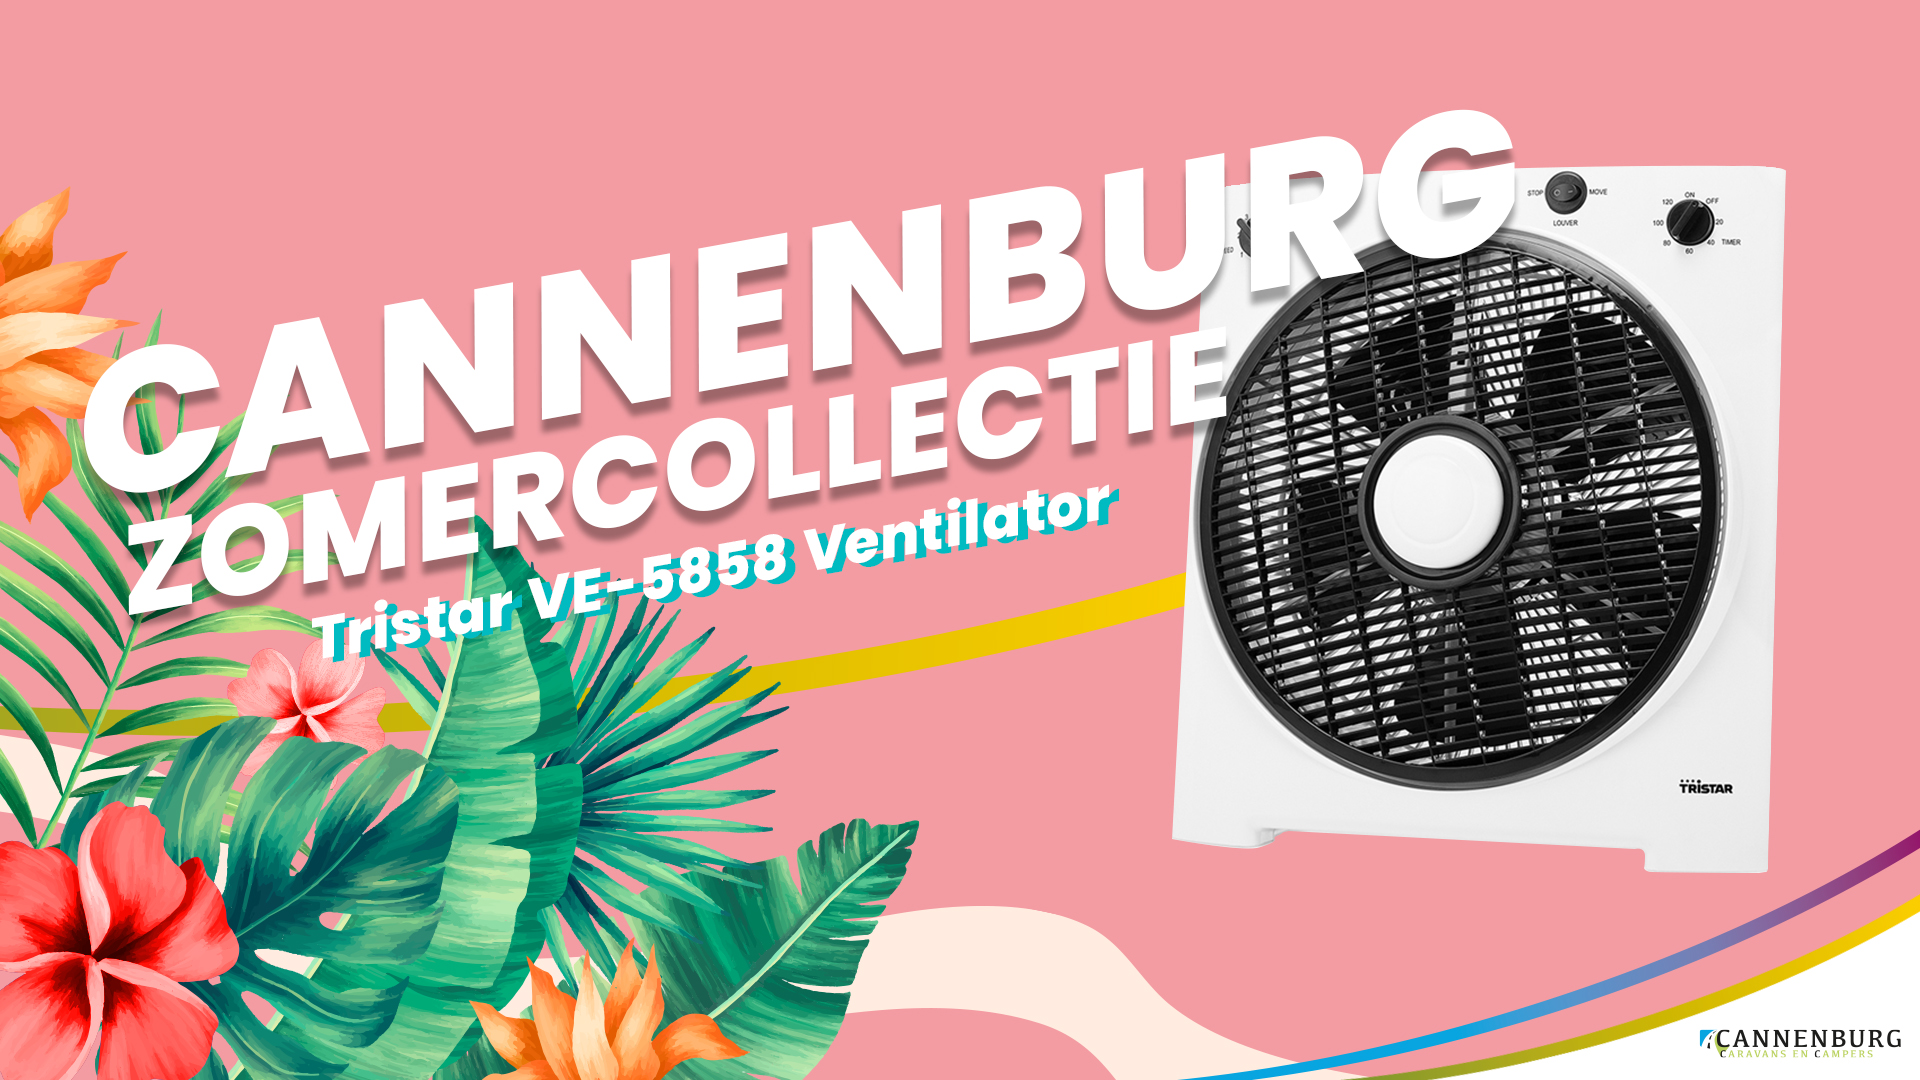 Cannenburg Zomer collectie 2020 Ventilator Tristar VE-5858 ventilator